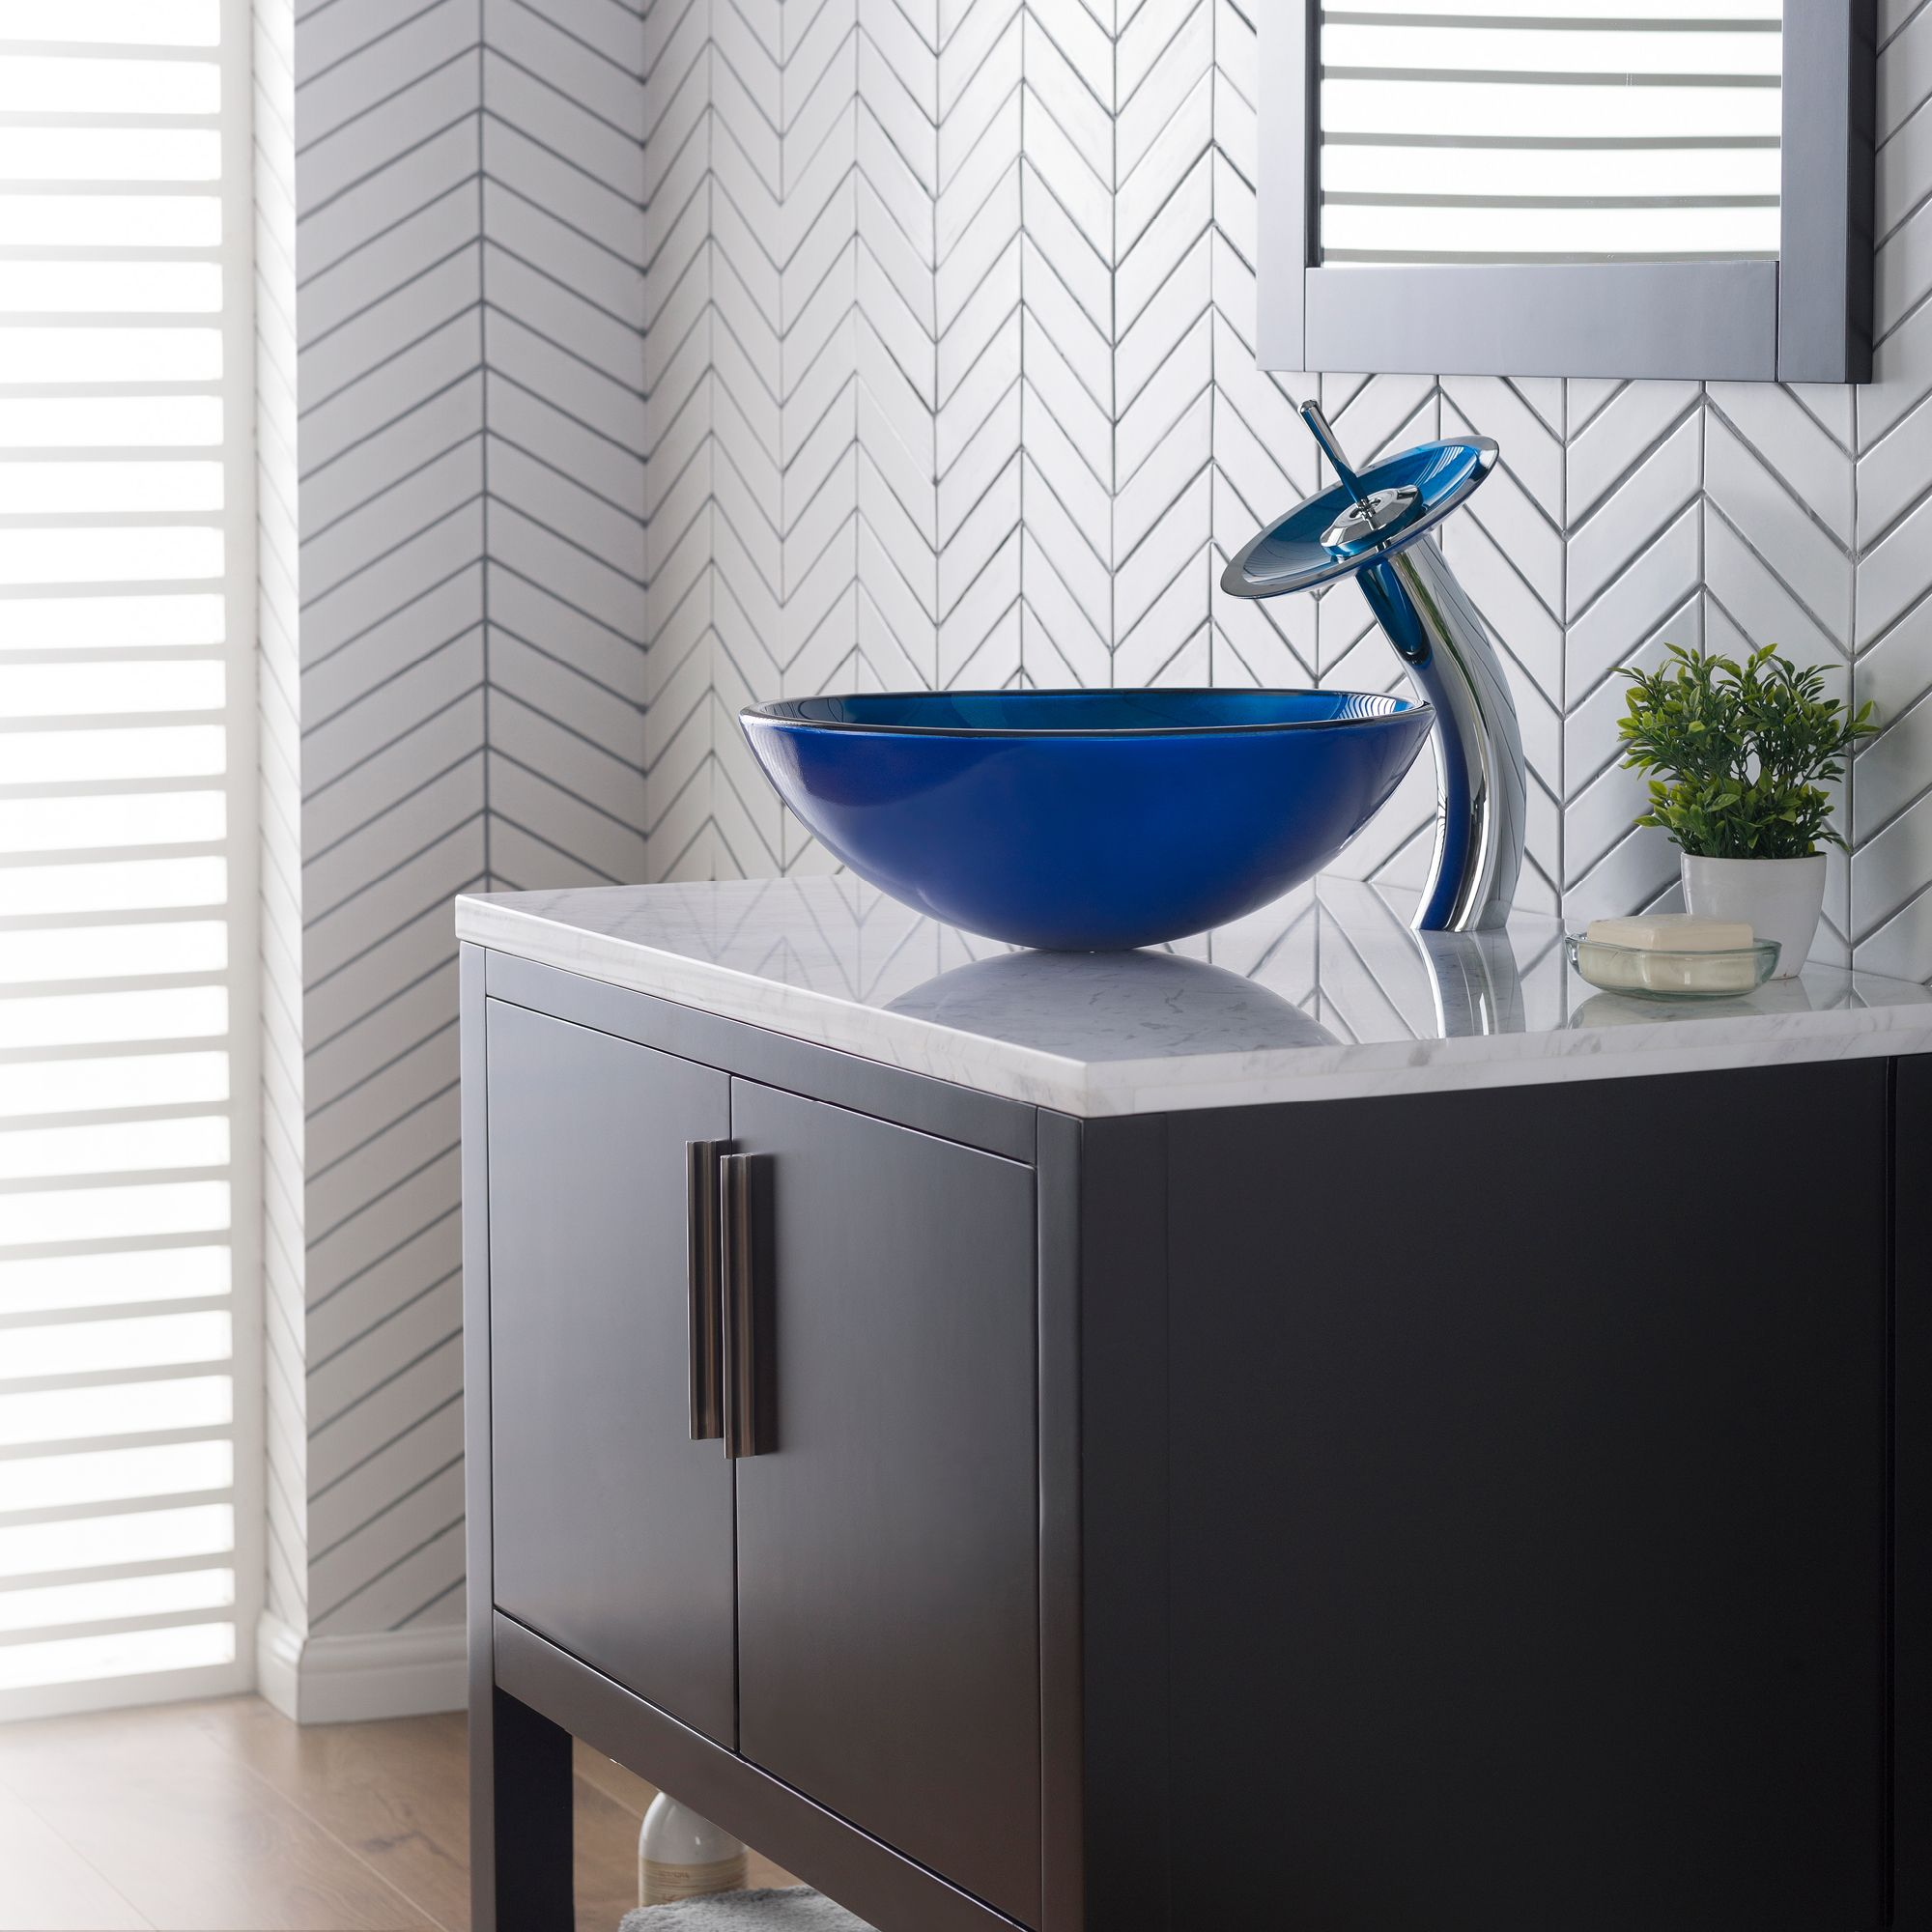 Home Improvement: Refreshing a Bathroom Look in USD $200